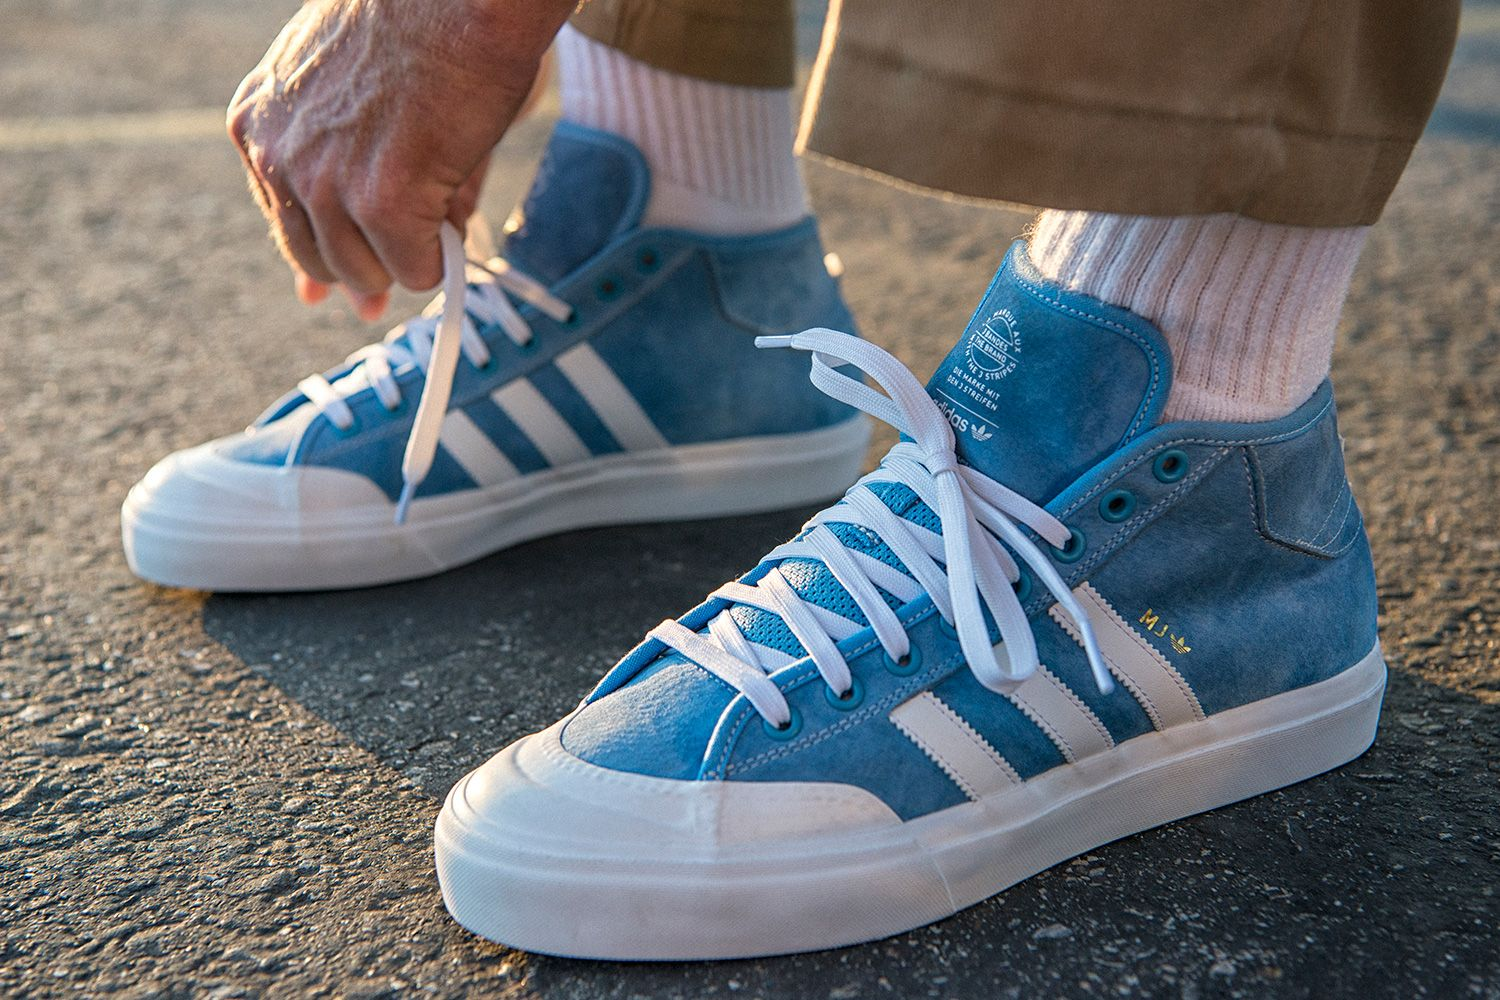 Marc Johnson is treated with a special variation of the classic adidas  Matchcourt Mid as a Global Pro team rider for adidas Skateboarding. ec77a48c7